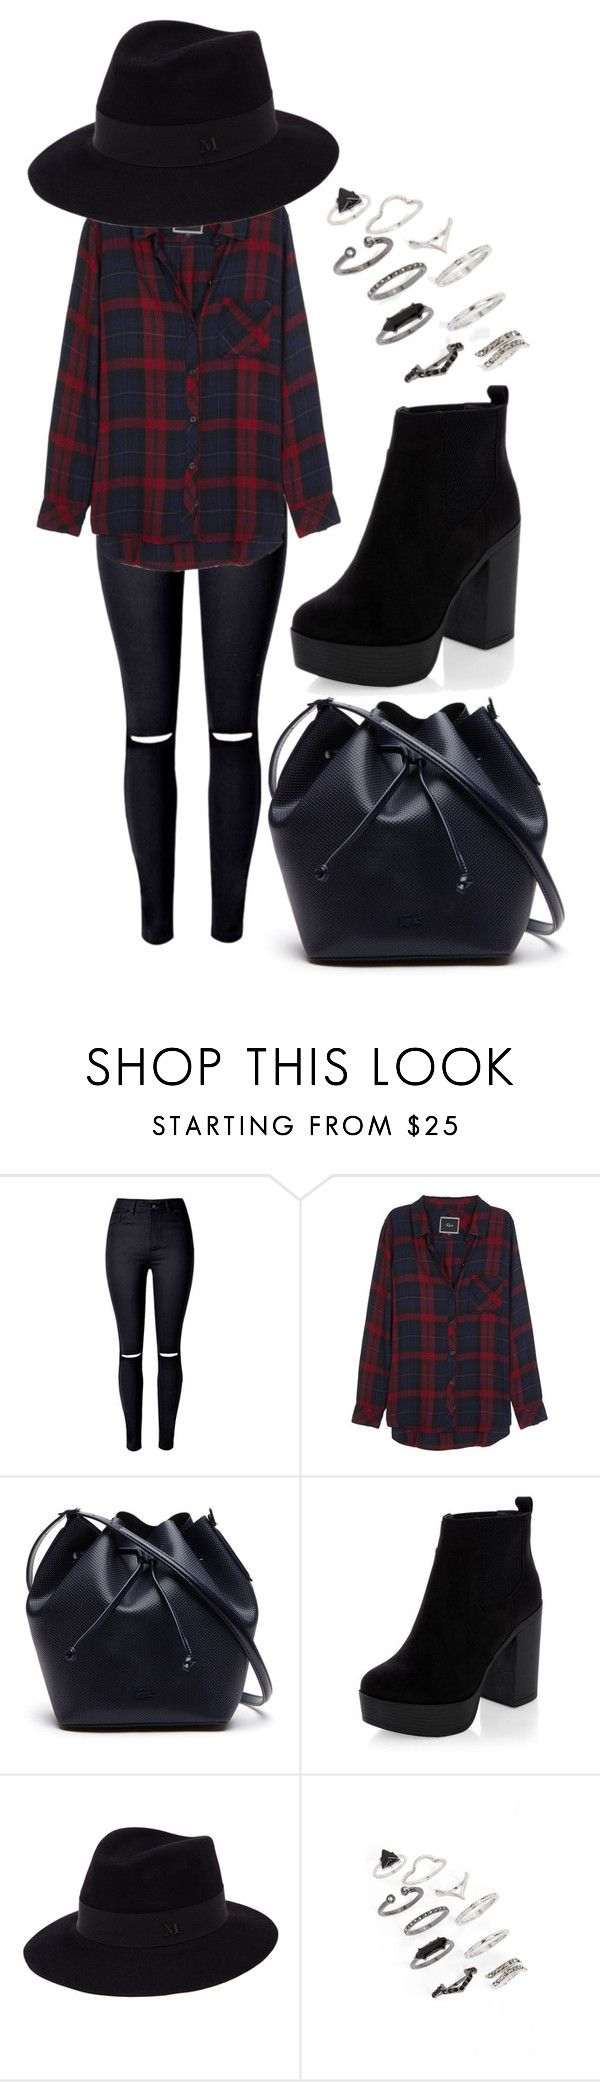 """""""Going out for a drink kind of outfit"""" by ellieparsons ❤ liked on Polyvore featuring WithChic, Rails, Lacoste, Maison Michel and Topshop"""